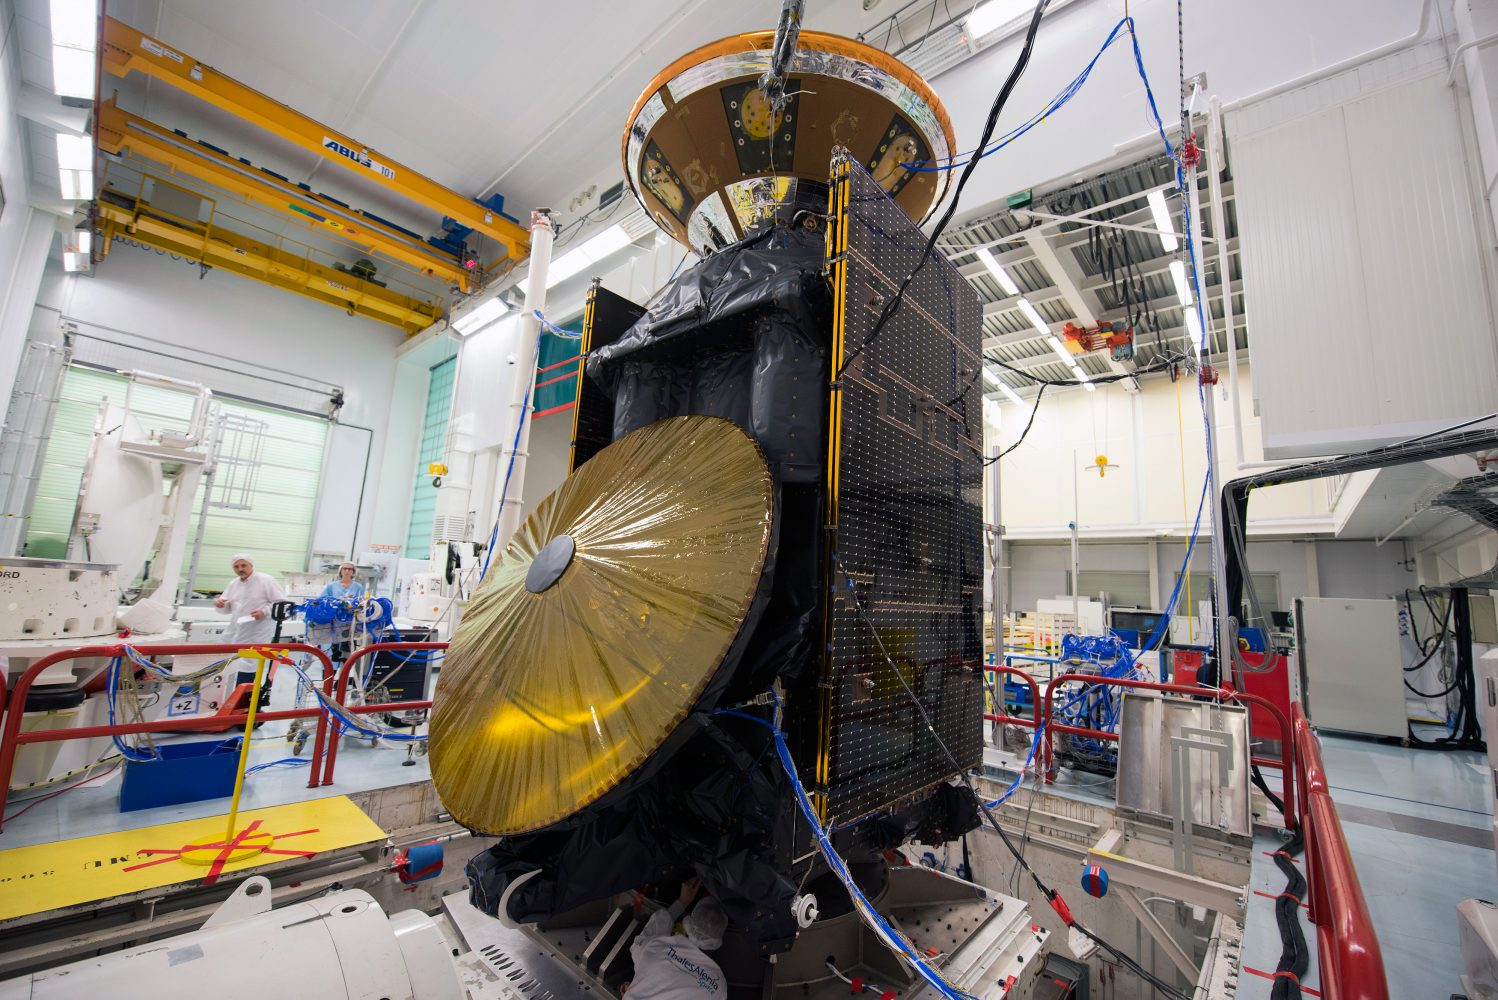 European+Space+Agency+launches+ExoMars+2016%21